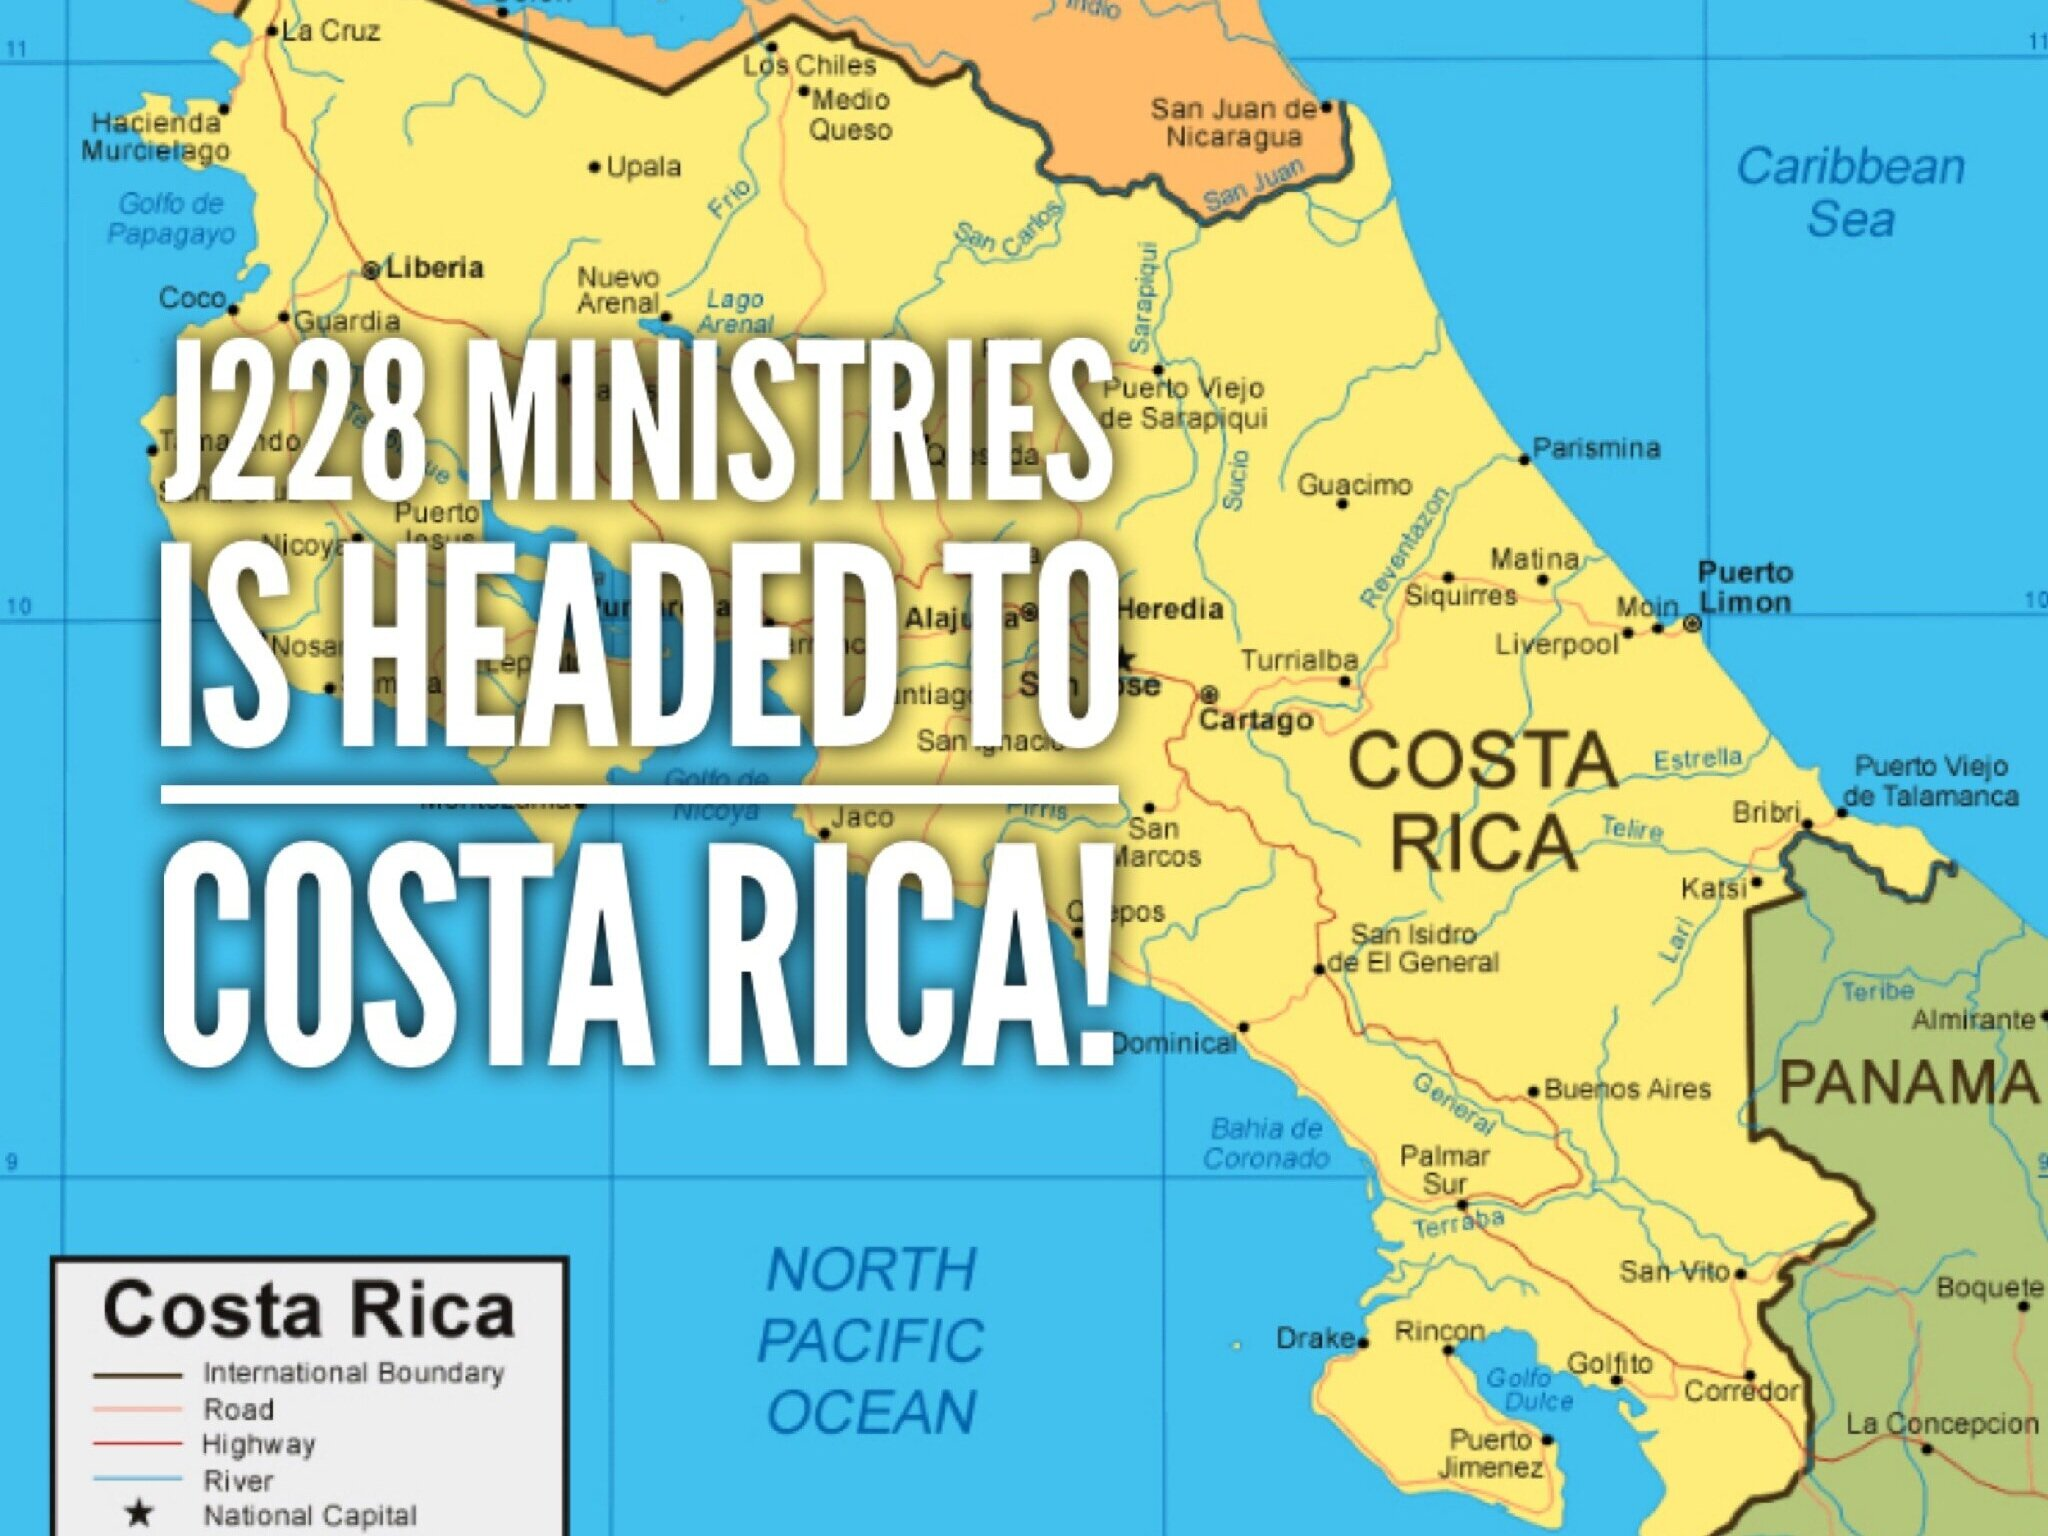 """In early 2020, members of the J228 Ministries team will be headed to Costa Rica to minister to victims of sex trafficking as well as their children. In a country where prostitution is legal, young girls are often sold to the sex trade industry at a very young age by their families. Our team will be ministering hope, love, and healing to young ladies that have been rescued from this nightmare, as well as their children that resulted from it.  We will also be ministering at local churches, bringing the purpose and power of God's plan for families and parenting. Several members of our team will need full sponsorship of $1700 for their flight and stay costs.  In addition, we would love to take 200 copies of the Spanish translation, """"Let the Children Come"""" and """"Deceived No More"""", as gifts to the children and churches there. Every little bit is a huge blessing so if you would like to donate, simply click """"DONATE"""" below. If like more information on providing financing for other mission related projects, please click  HERE ."""